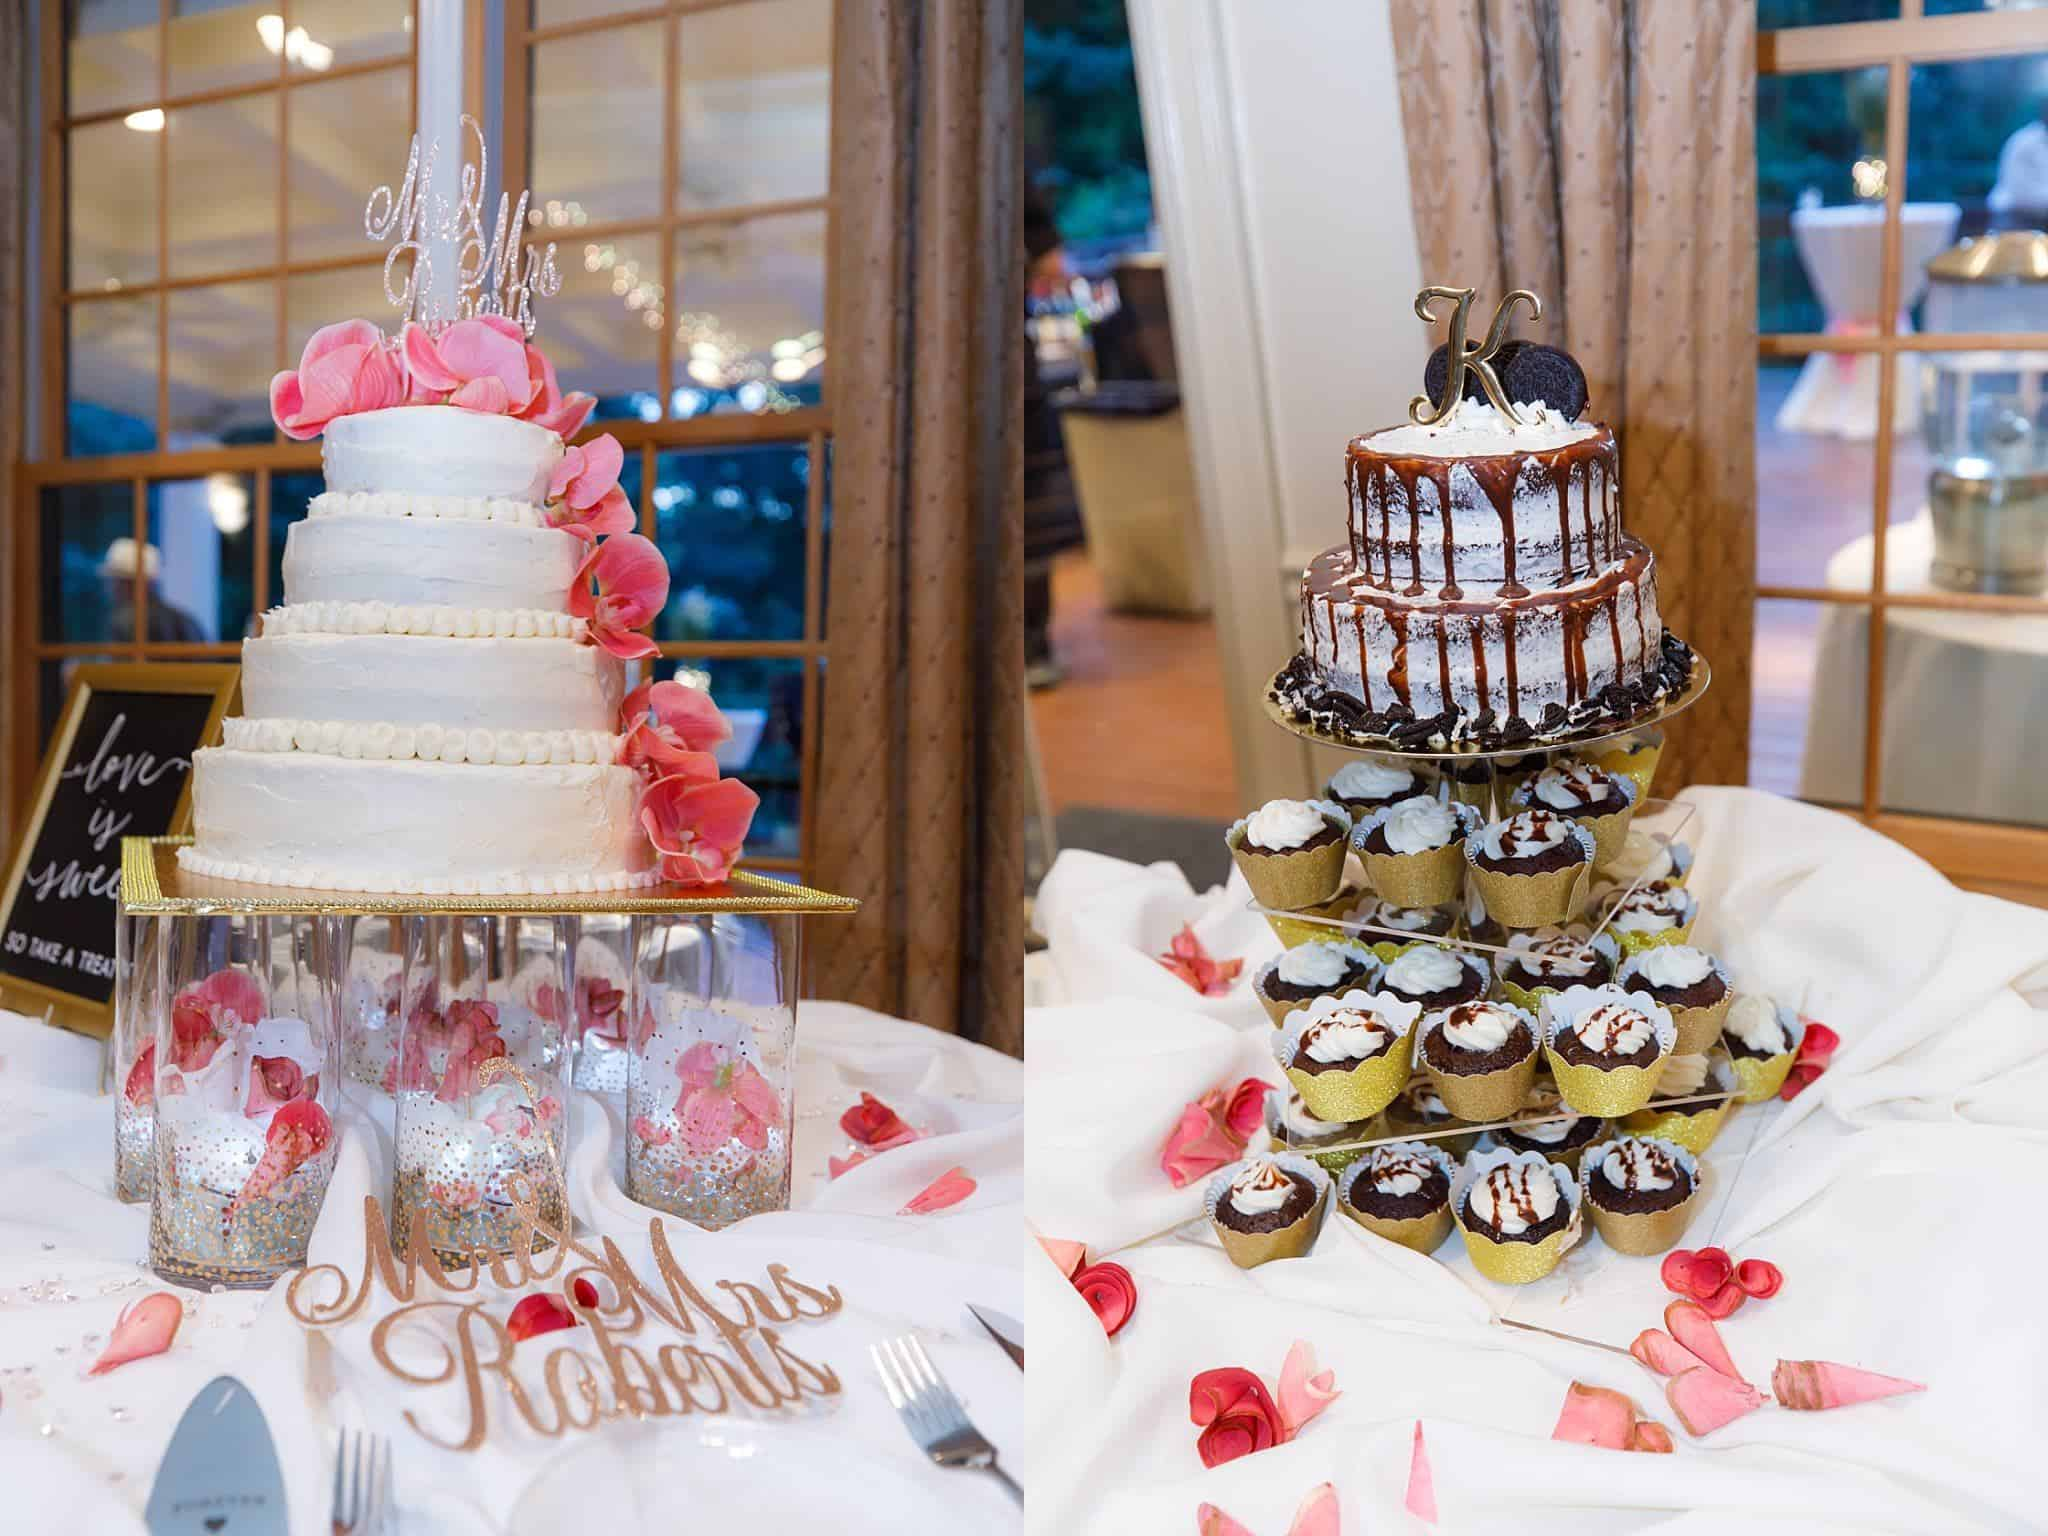 Wedding Cake on left, Grooms Cake on right